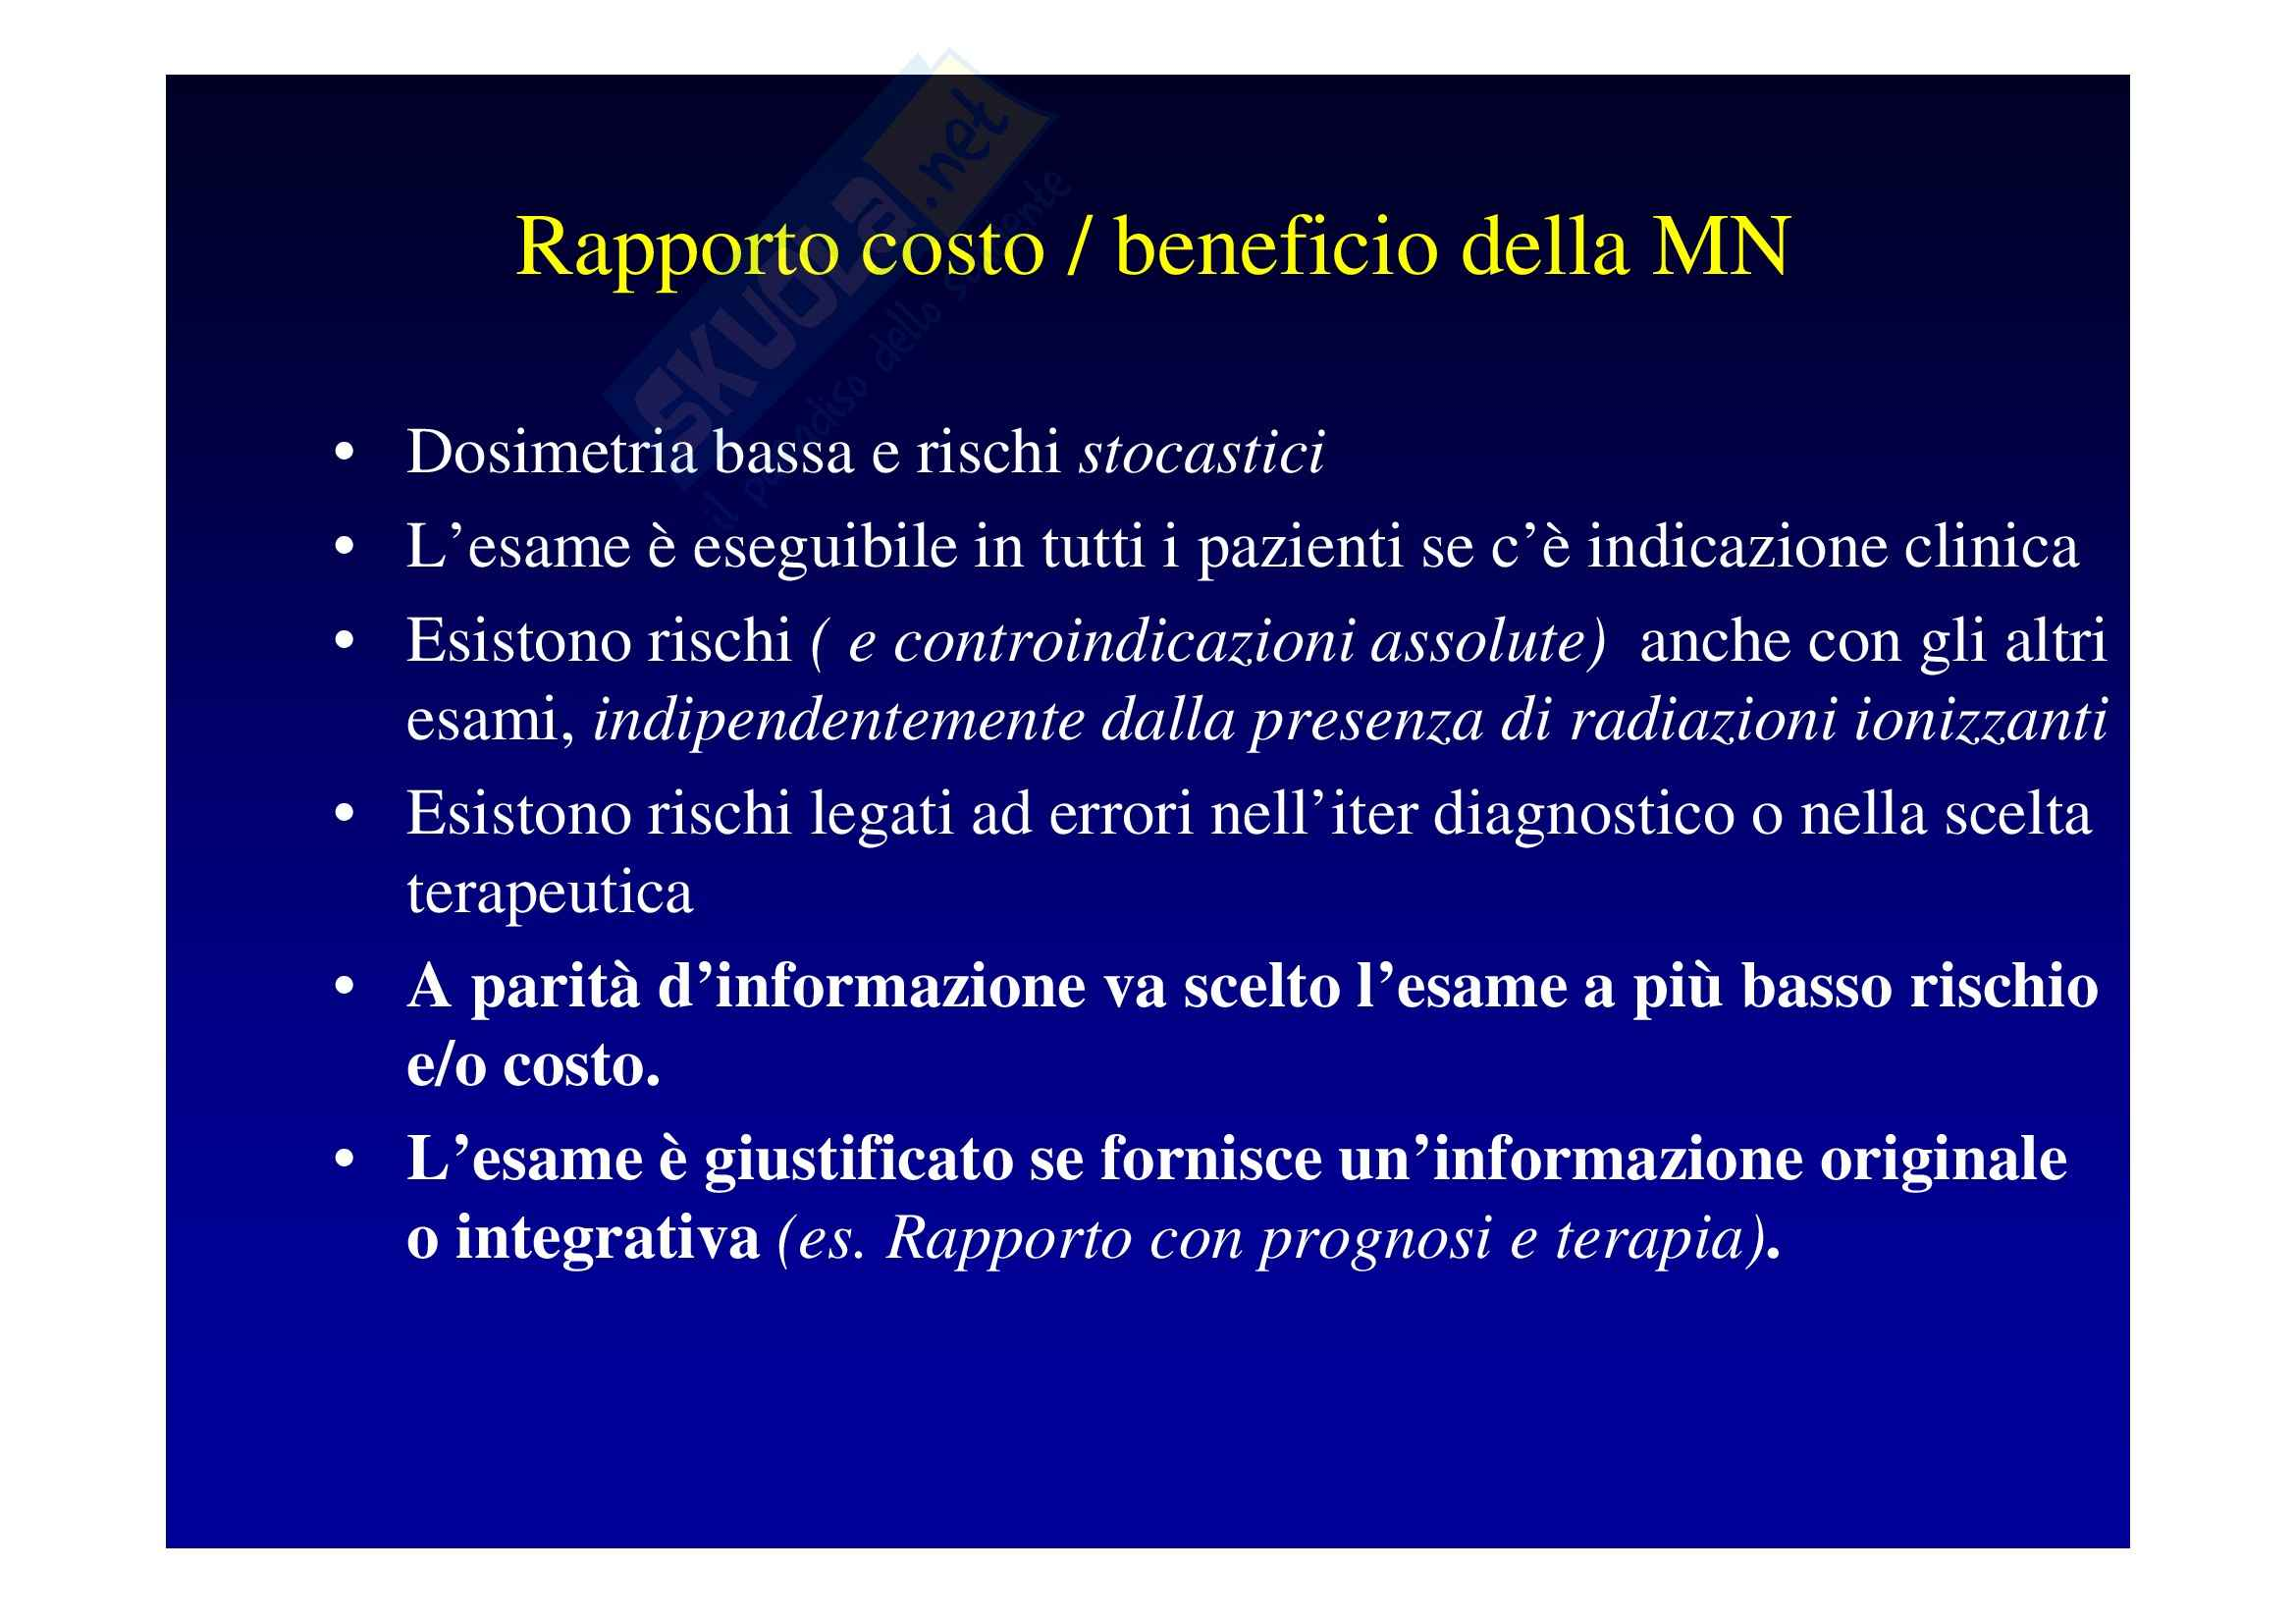 Medicina nucleare - Appunti Pag. 36